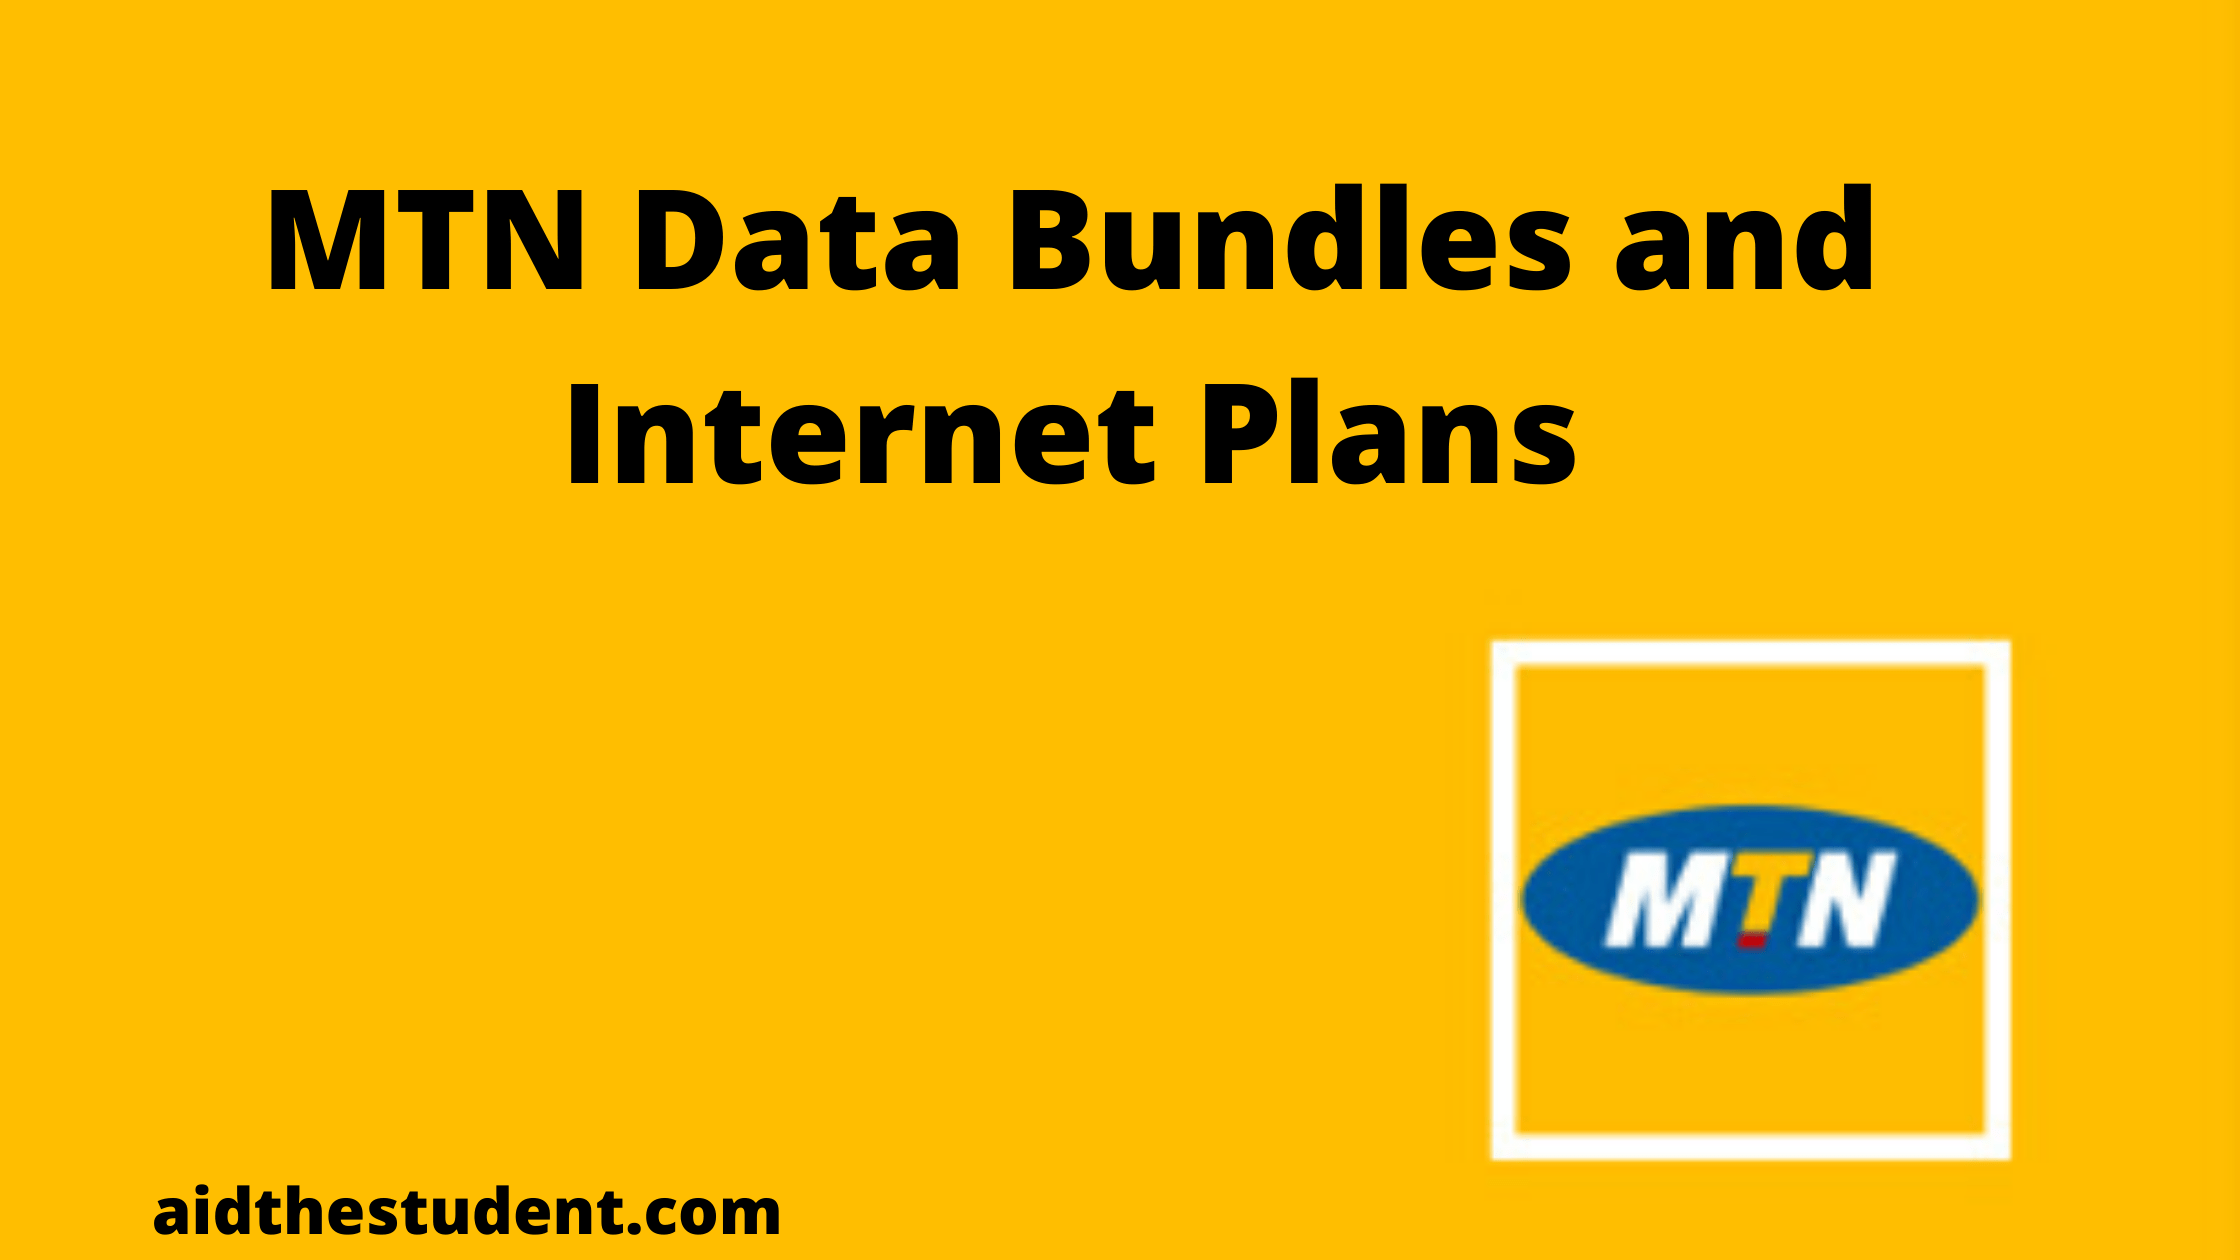 Mtn Data Bundles And Internet Plans Codes And Prices 2020 Aid The Student